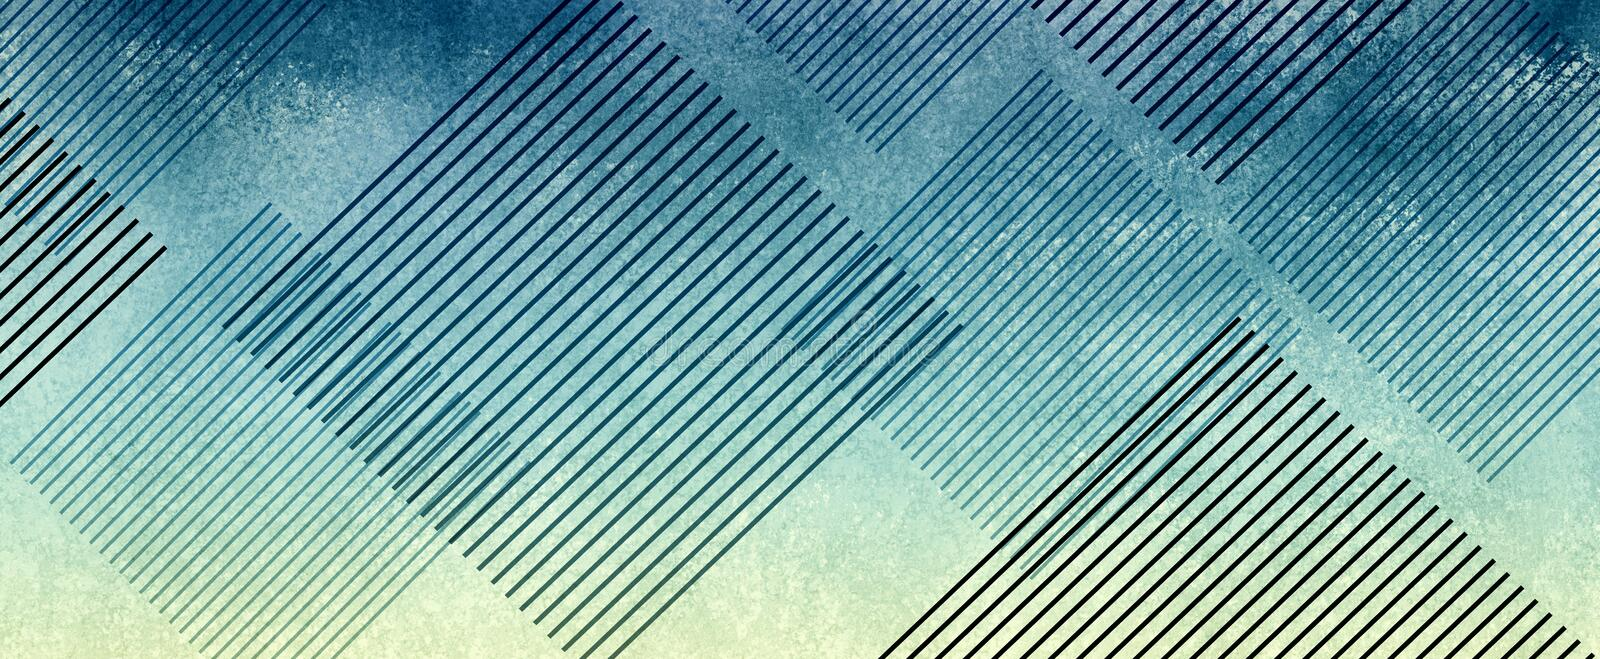 Striped diamond shapes on abstract blue and yellow textured background design stock photos